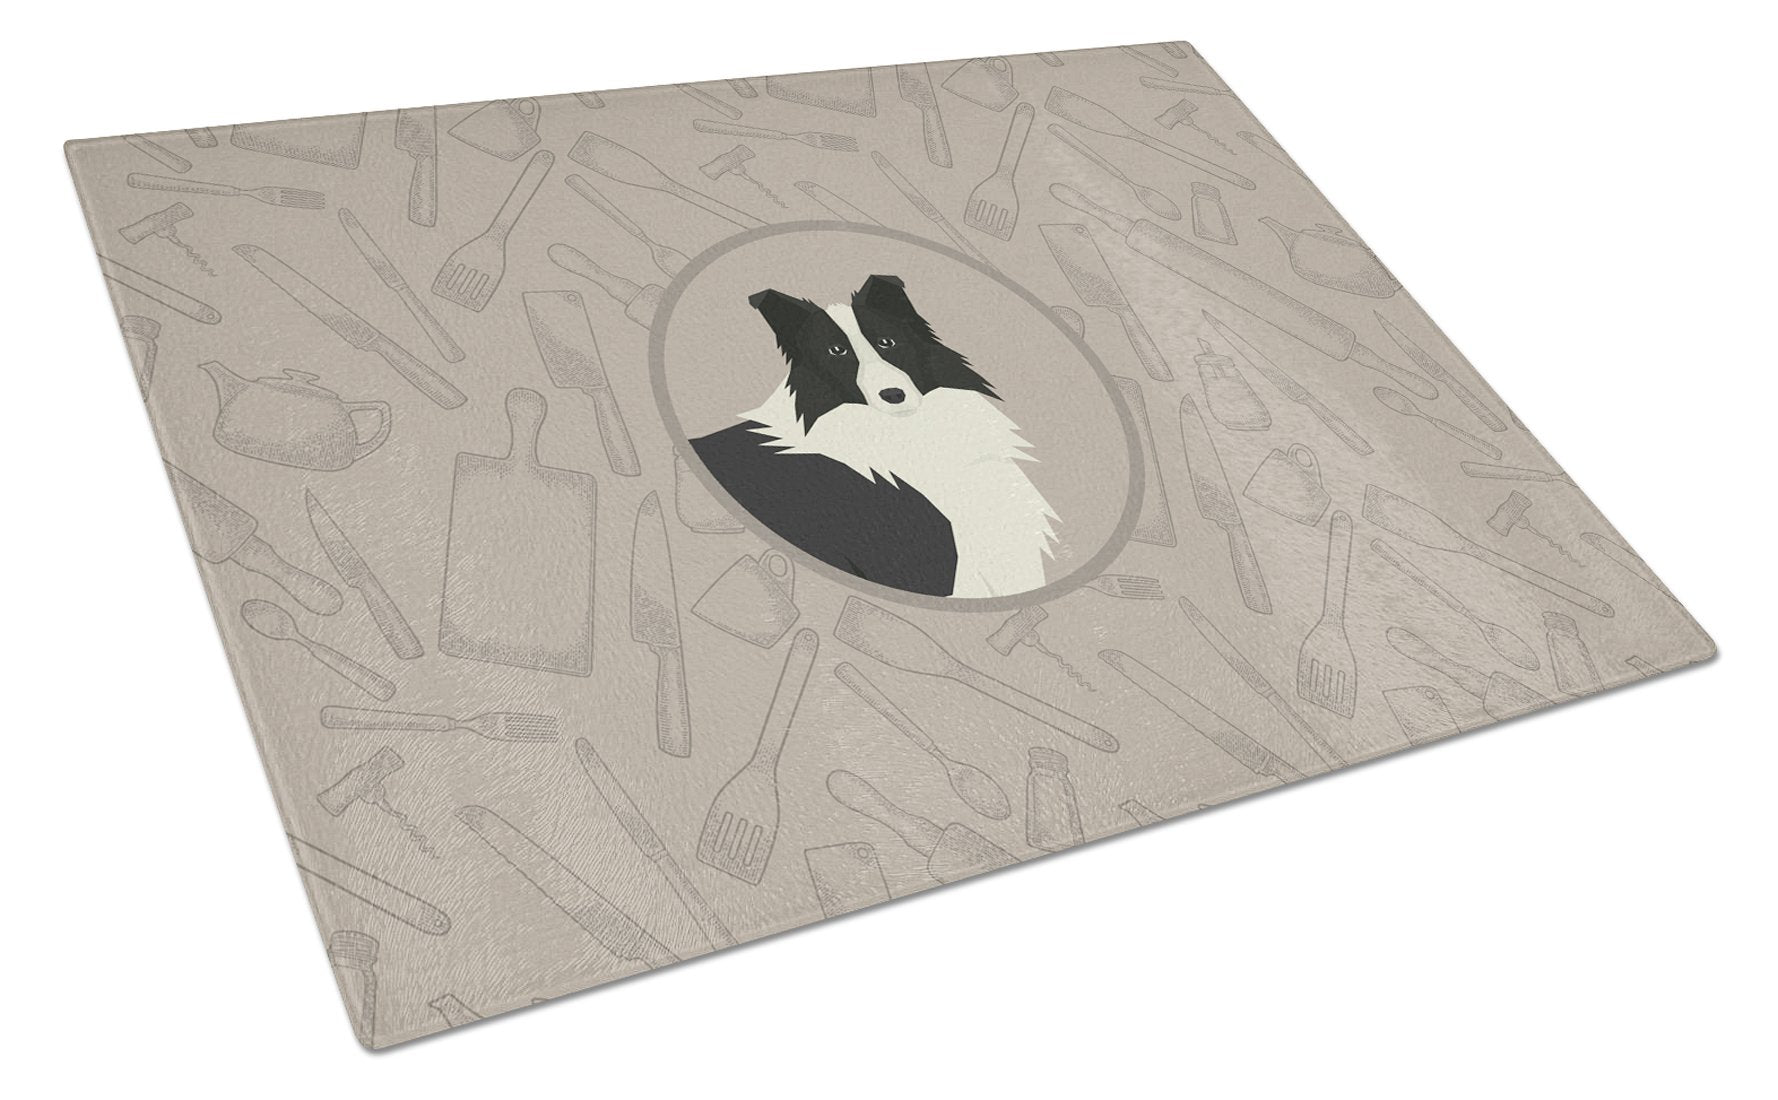 Border Collie In the Kitchen Glass Cutting Board Large CK2169LCB by Caroline's Treasures